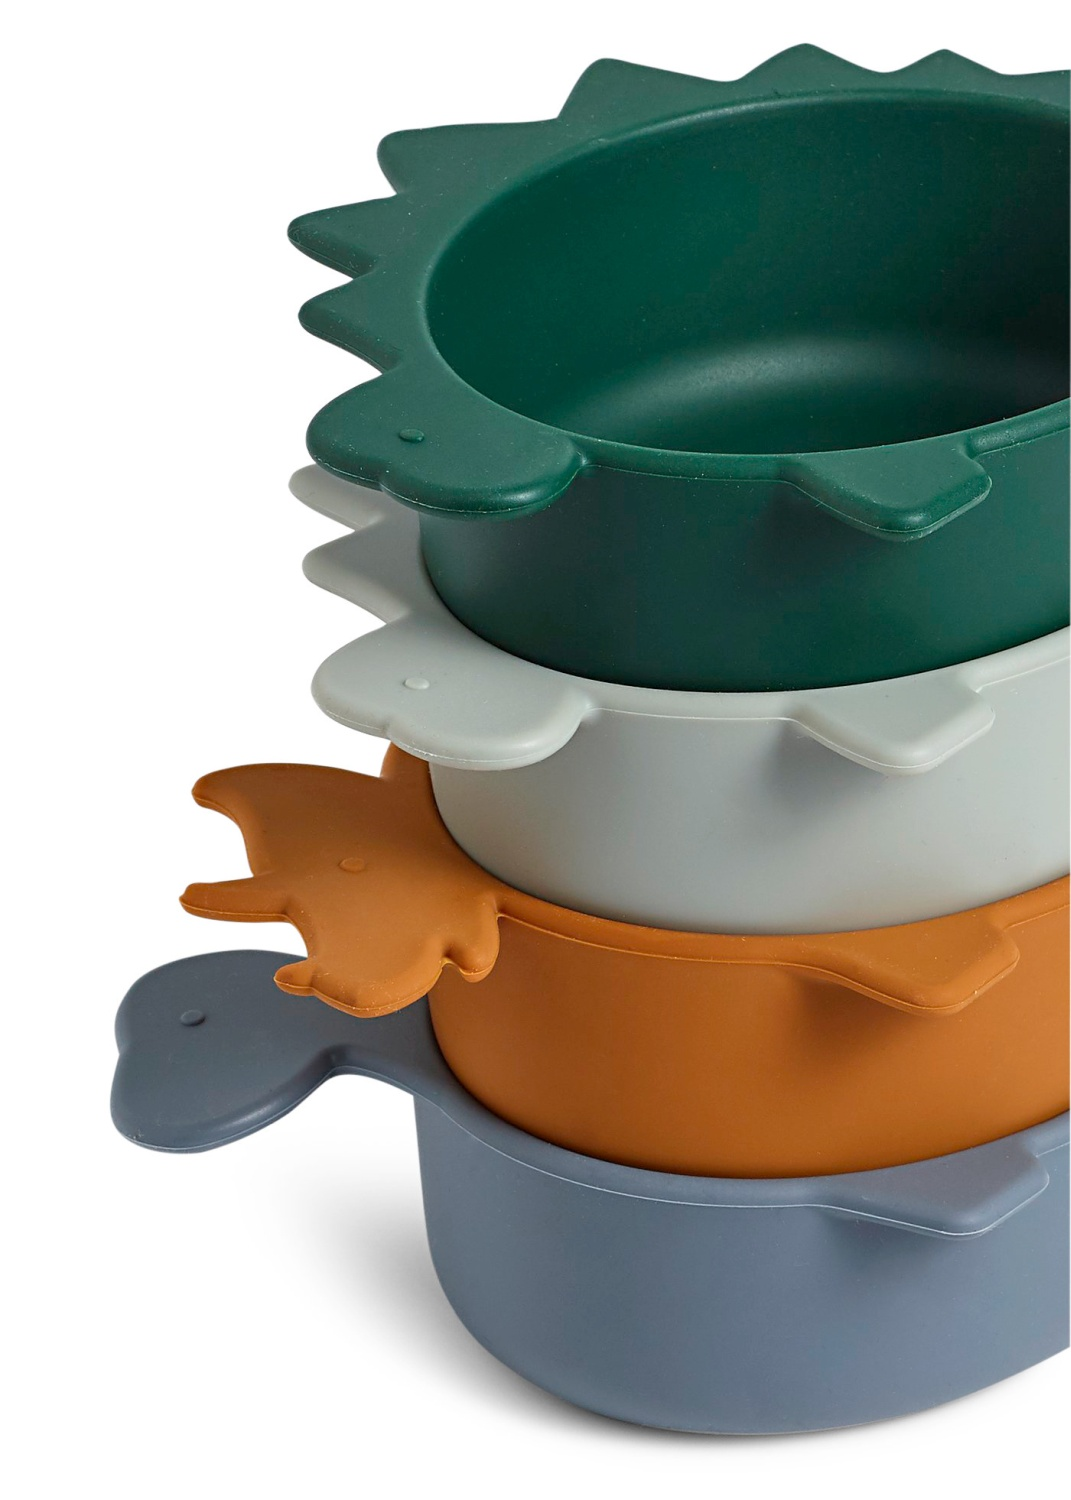 Iggy silicone bowls - 4 pack image number 1